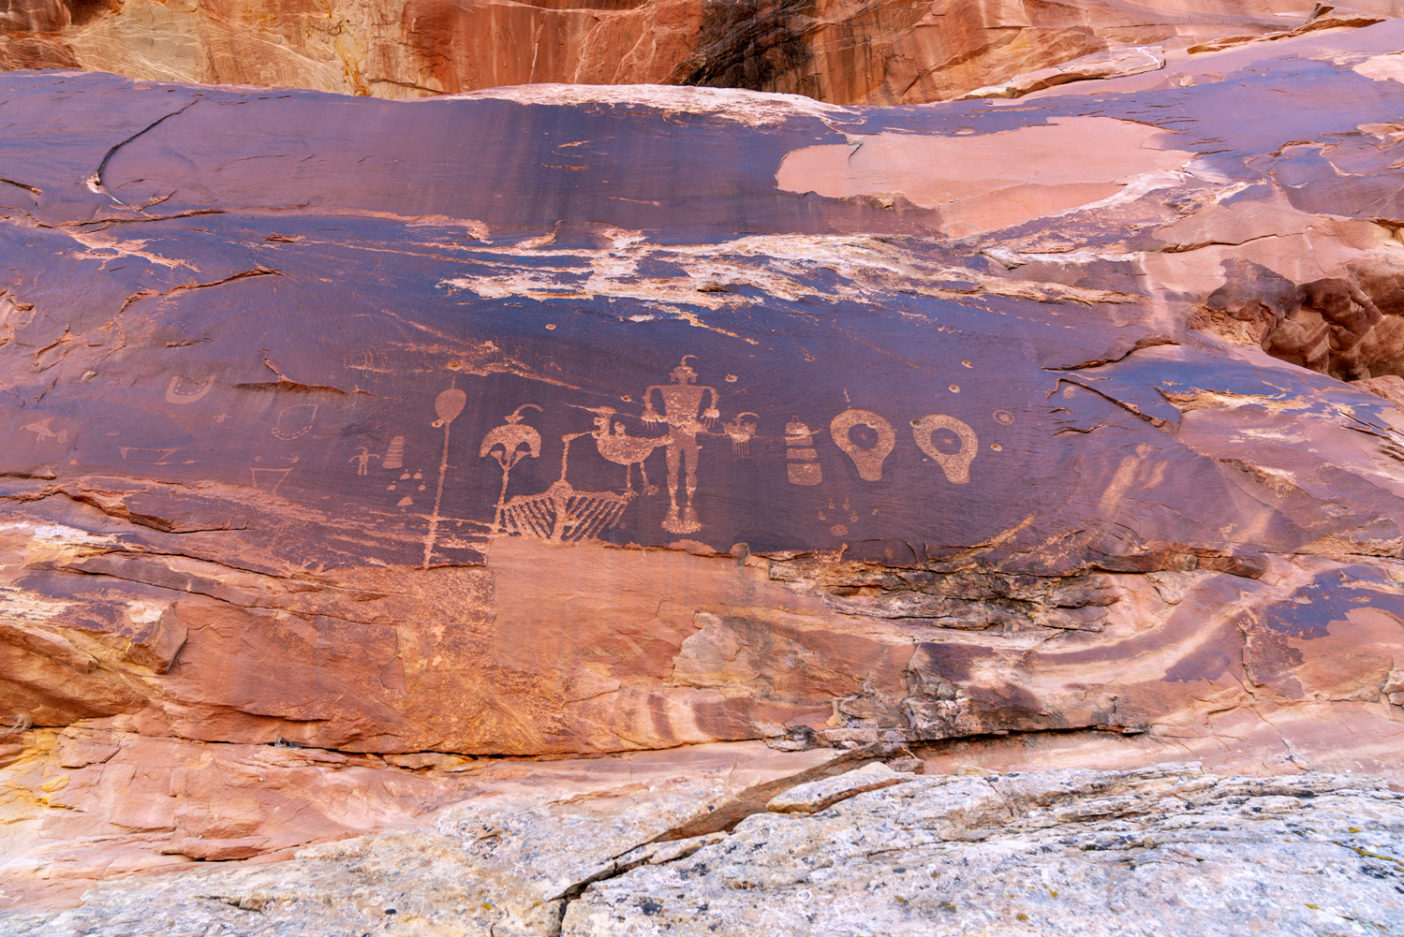 A sacred panel that has been marred by bullet holes. There are more than 100,000 cultural sites in Bears Ears. The region was recently named one of the most endangered cultural heritage sites in the world. Photo: Michael Estrada